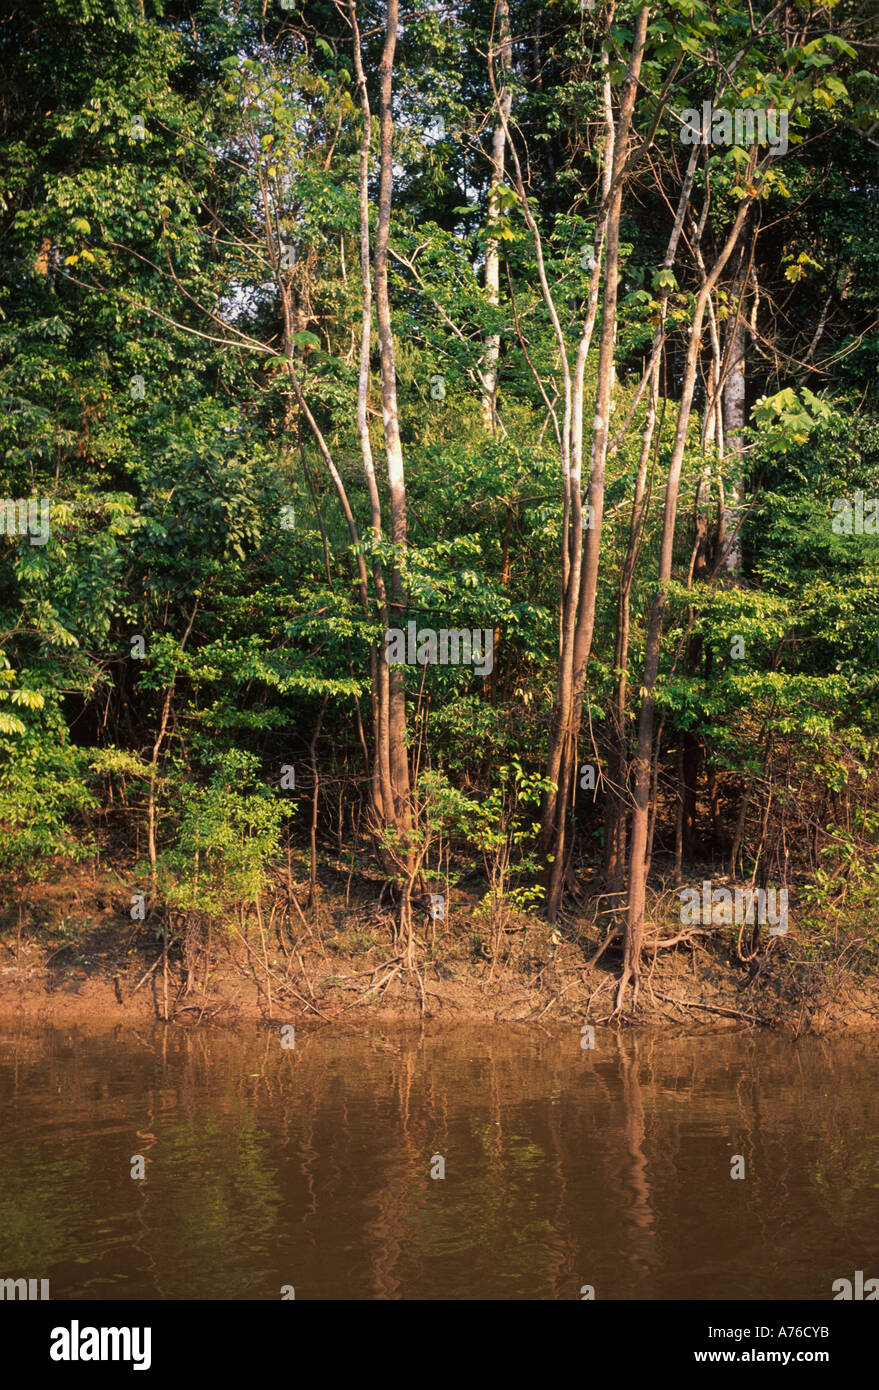 High water mark visible (white/brown tranistion) on riverside trees during dry season, Yarapa River, Amazon basin - Stock Image